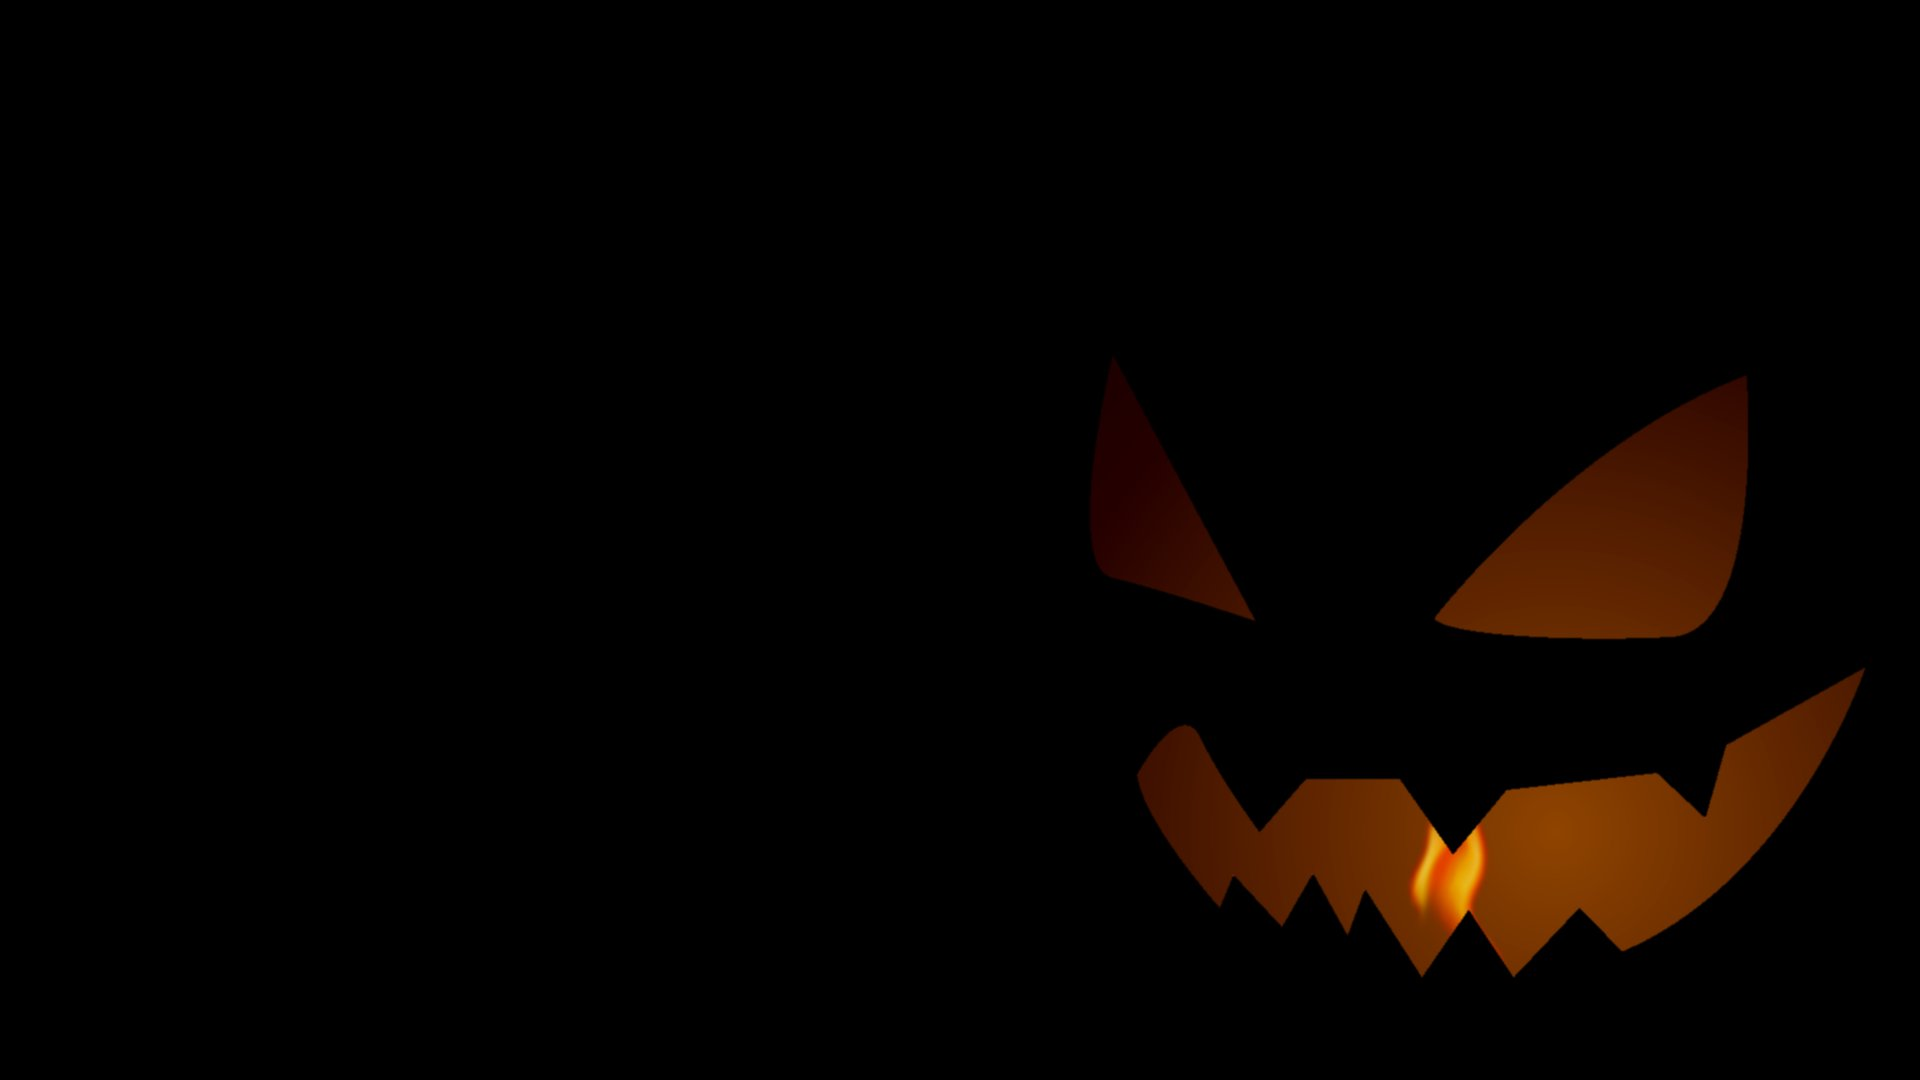 Animated Halloween Wallpaper - WallpaperSafari